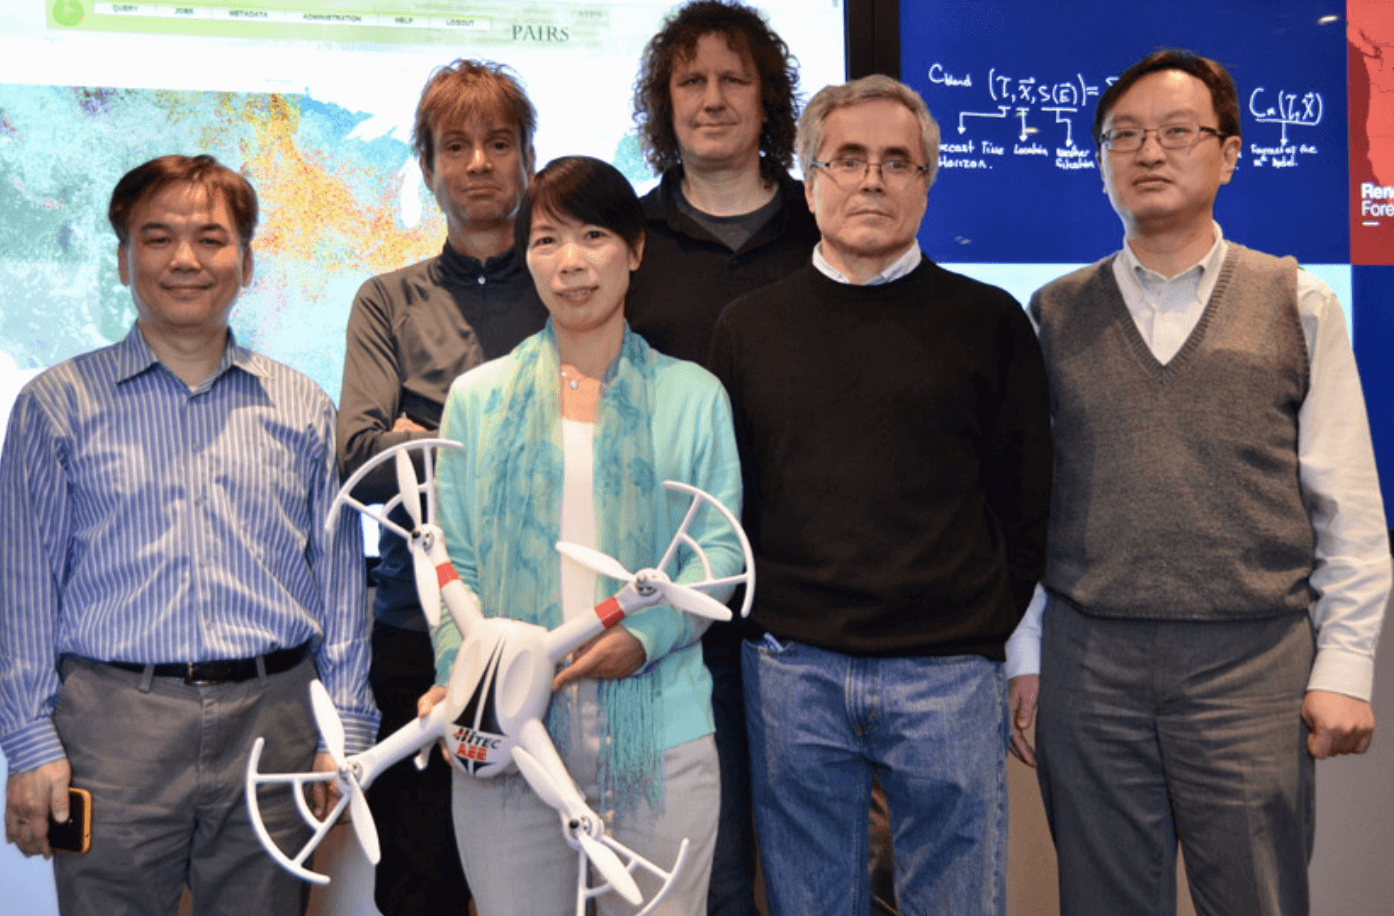 The IBM Research team, six people 5 male o1 female: From left to right: Rong Chang, Hendrik Hamman, Xiaoyan Shao, Marcus Freitag, Ildar Khabibrakhmanov, Siyuan Lu.